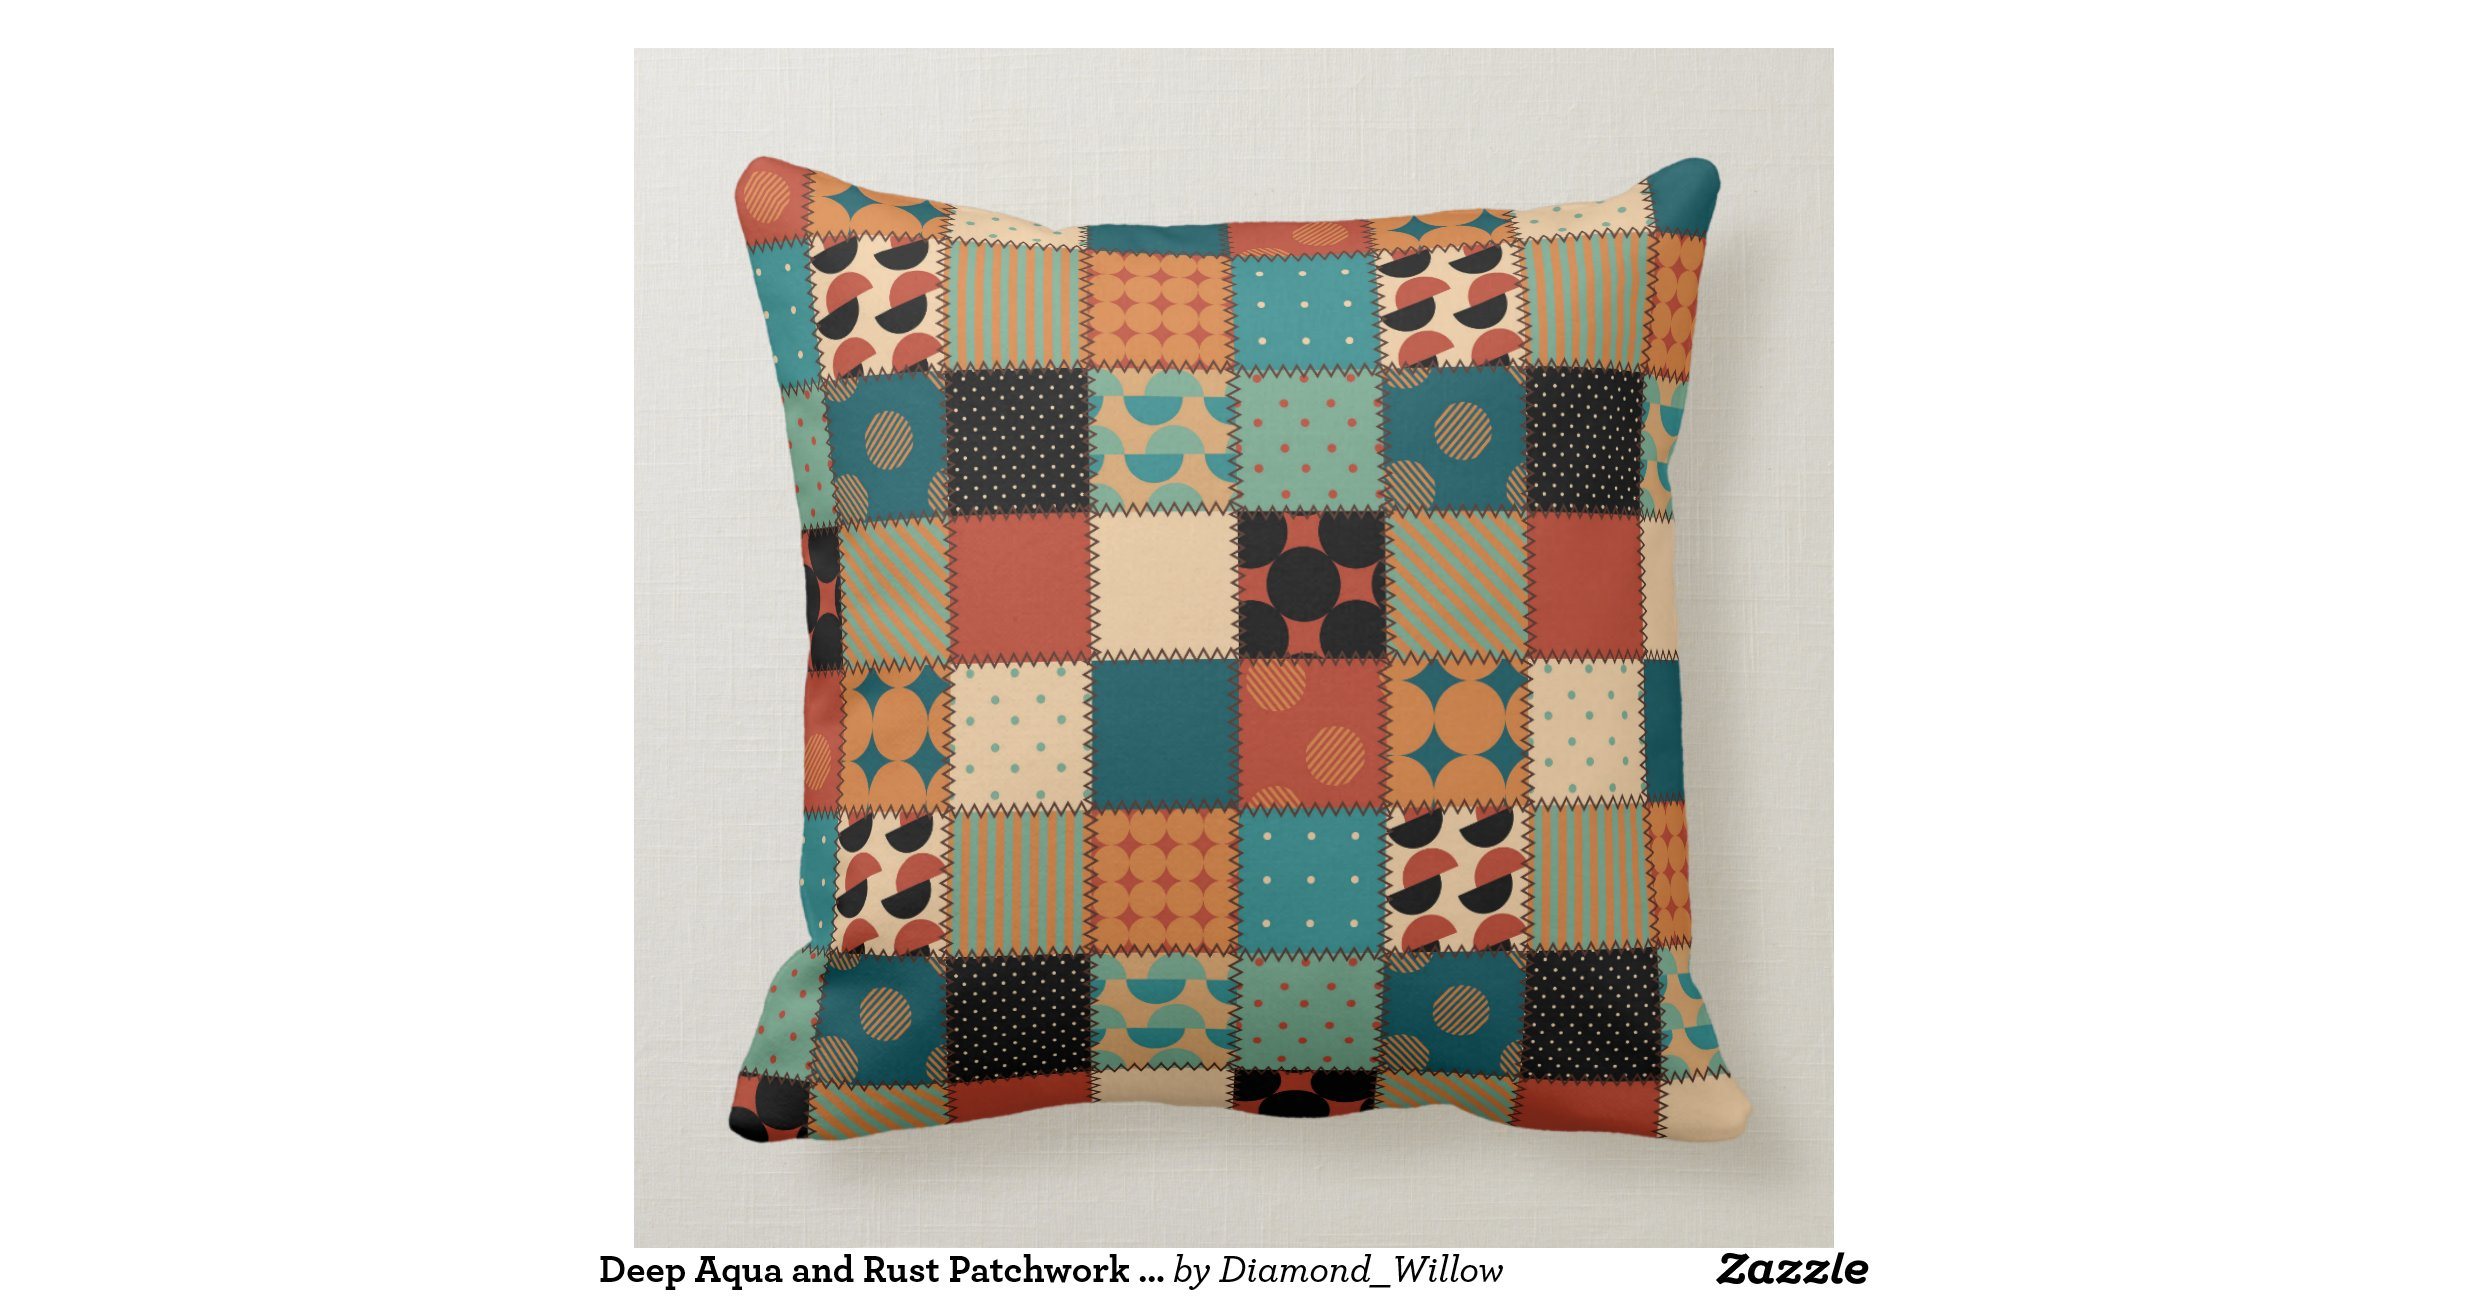 Quilt Patterns Pillowcases : Deep Aqua and Rust Patchwork Quilt Pattern Pillows Throw Cushions Zazzle